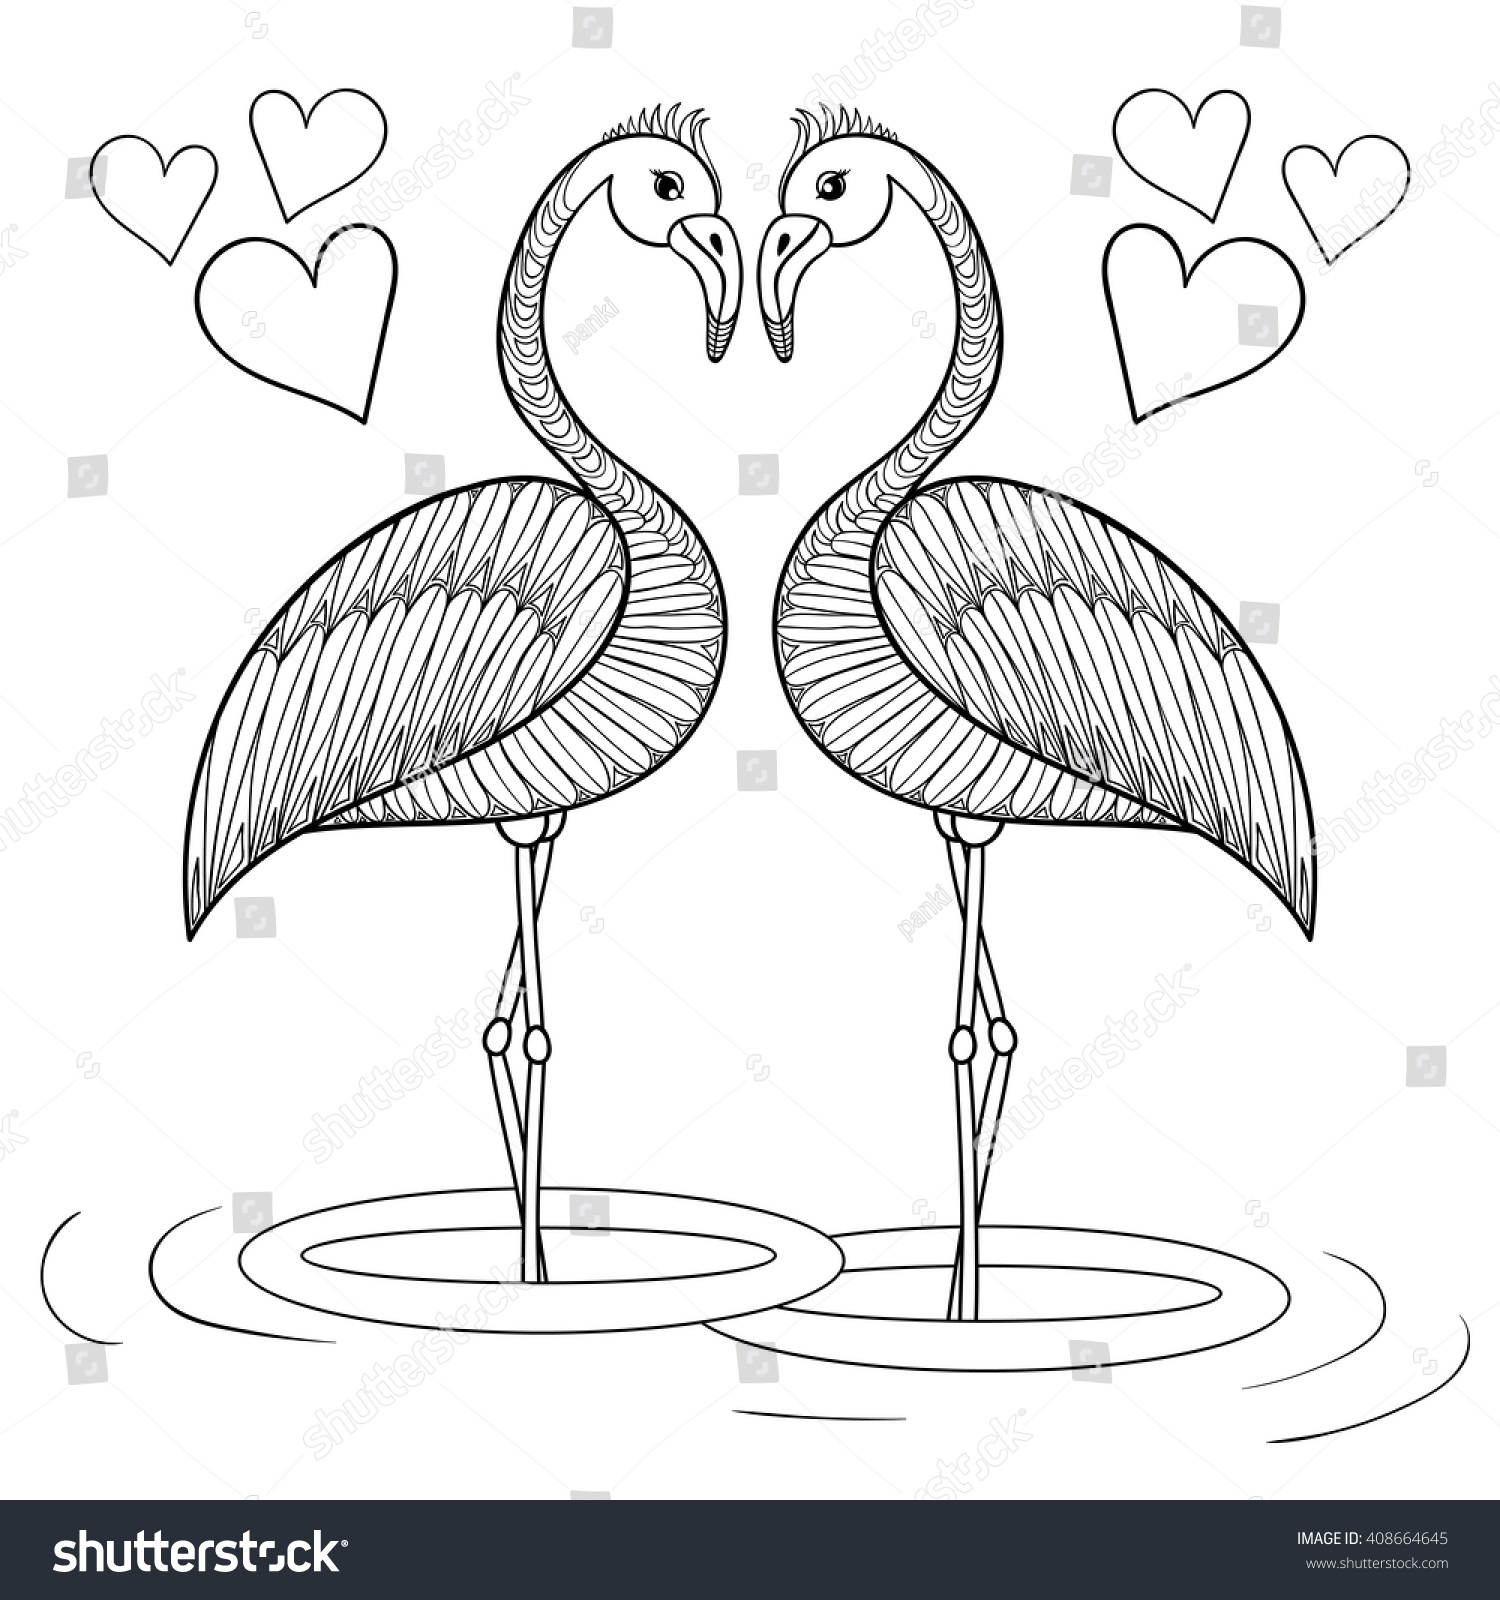 Coloring sheets for adults flamingo - Coloring Page With Flamingo Birds In Love Zentangle Hand Drawing Illustration Tribal Totem Bird For